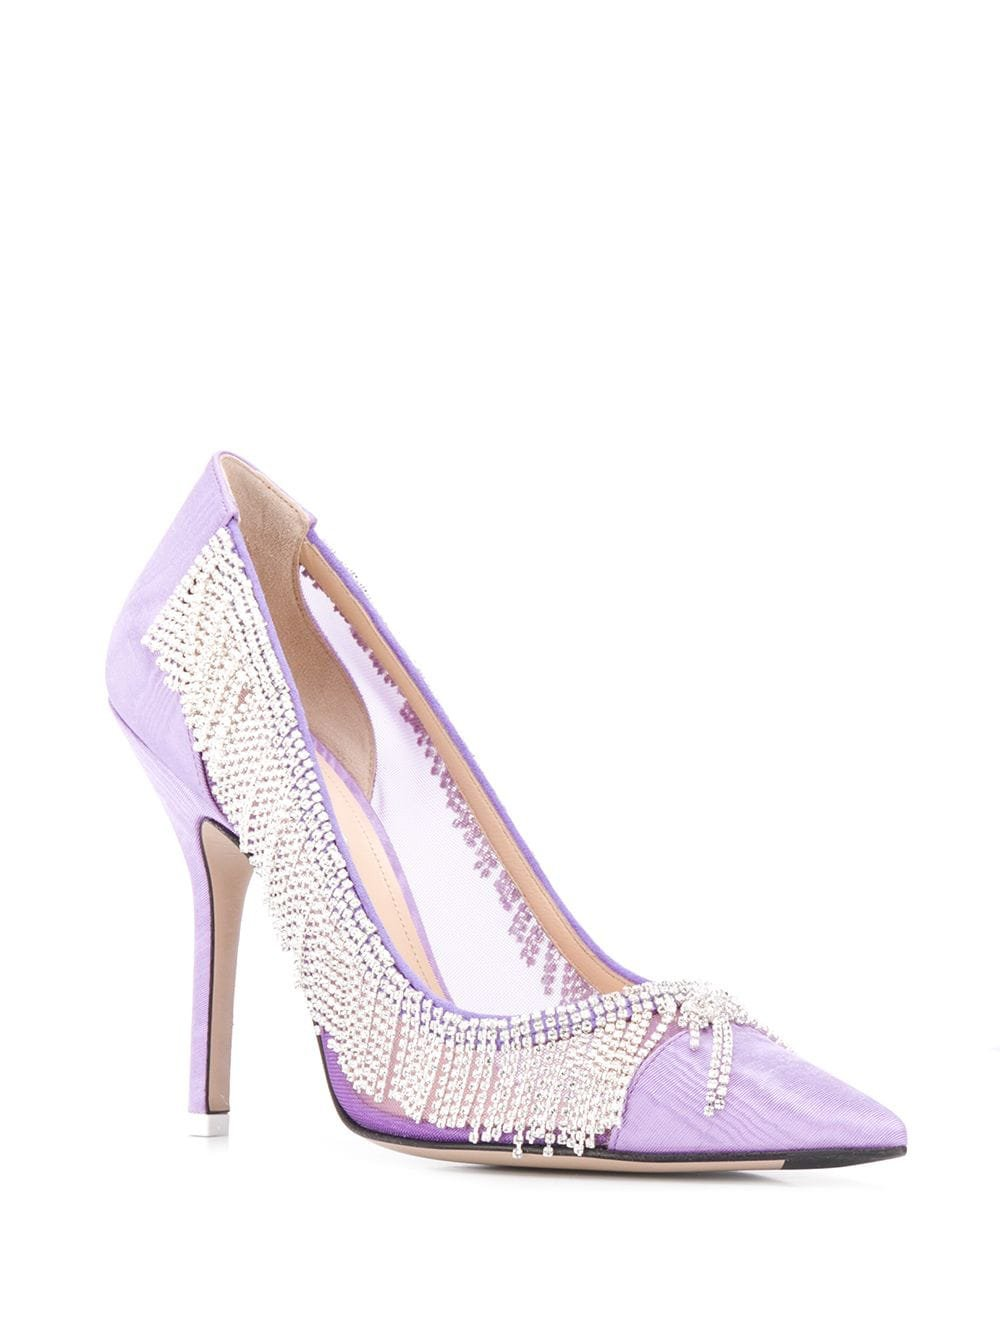 Attico embellished pointed pumps